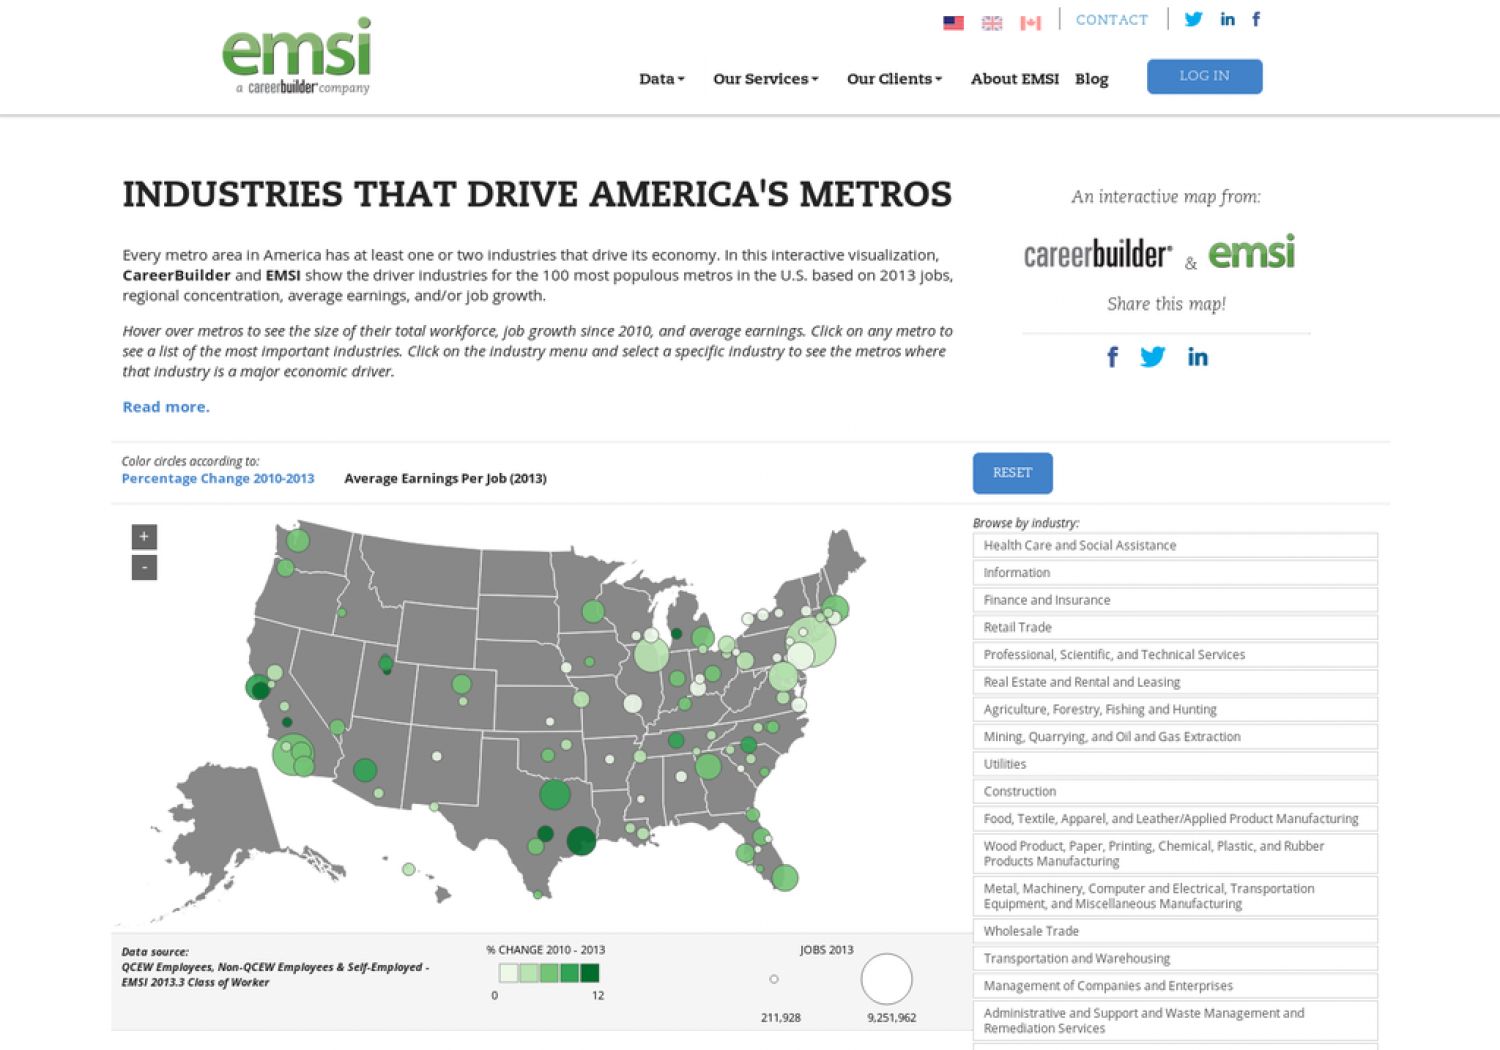 Industries that drive America's metros Infographic